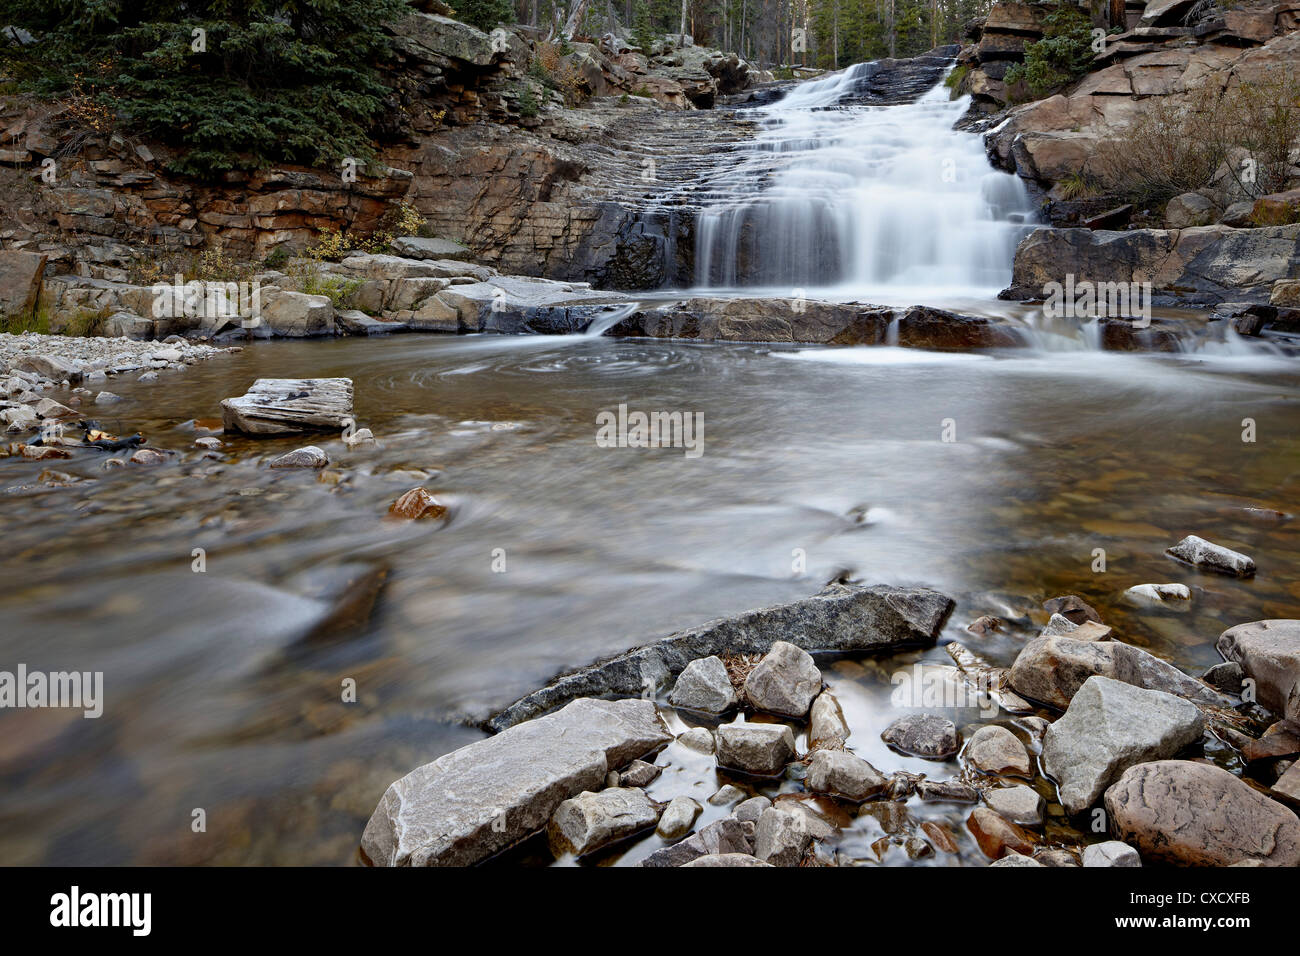 Provo Falls, Wasatch-Cache National Forest, Utah, United States of America, North America - Stock Image